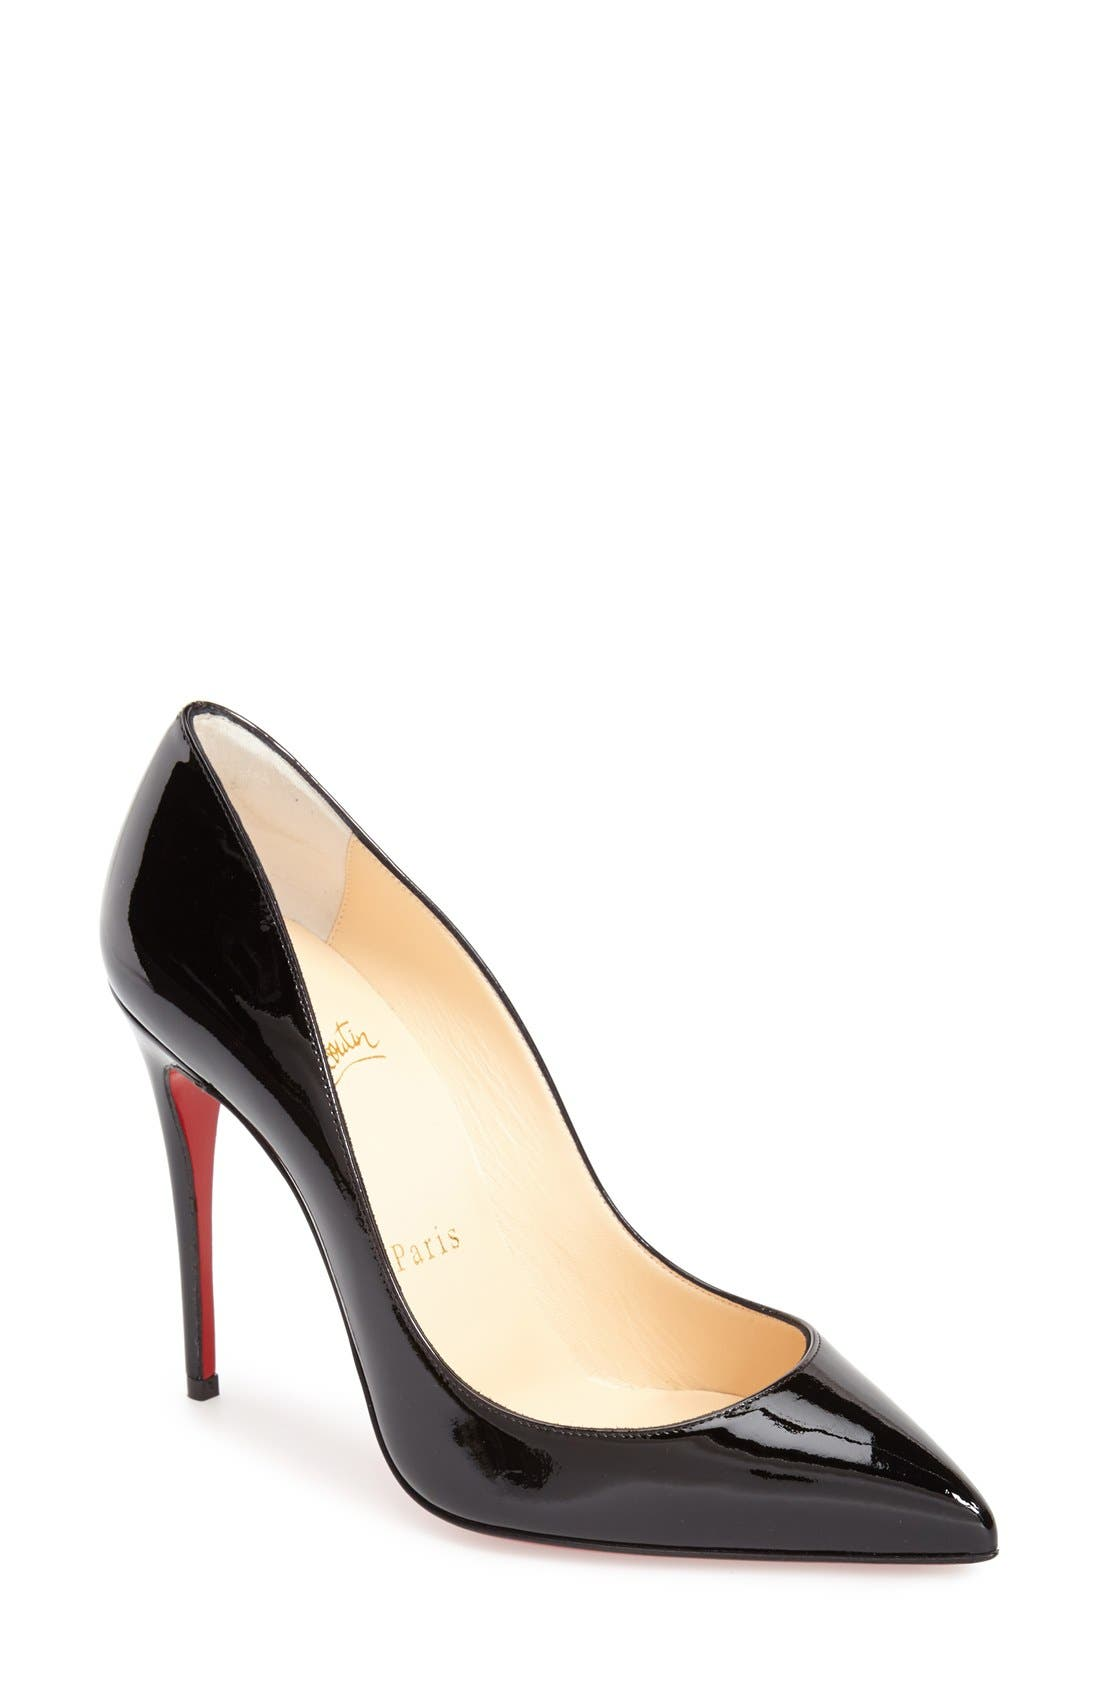 CHRISTIAN LOUBOUTIN, Pigalle Follies Pointy Toe Pump, Main thumbnail 1, color, BLACK PATENT